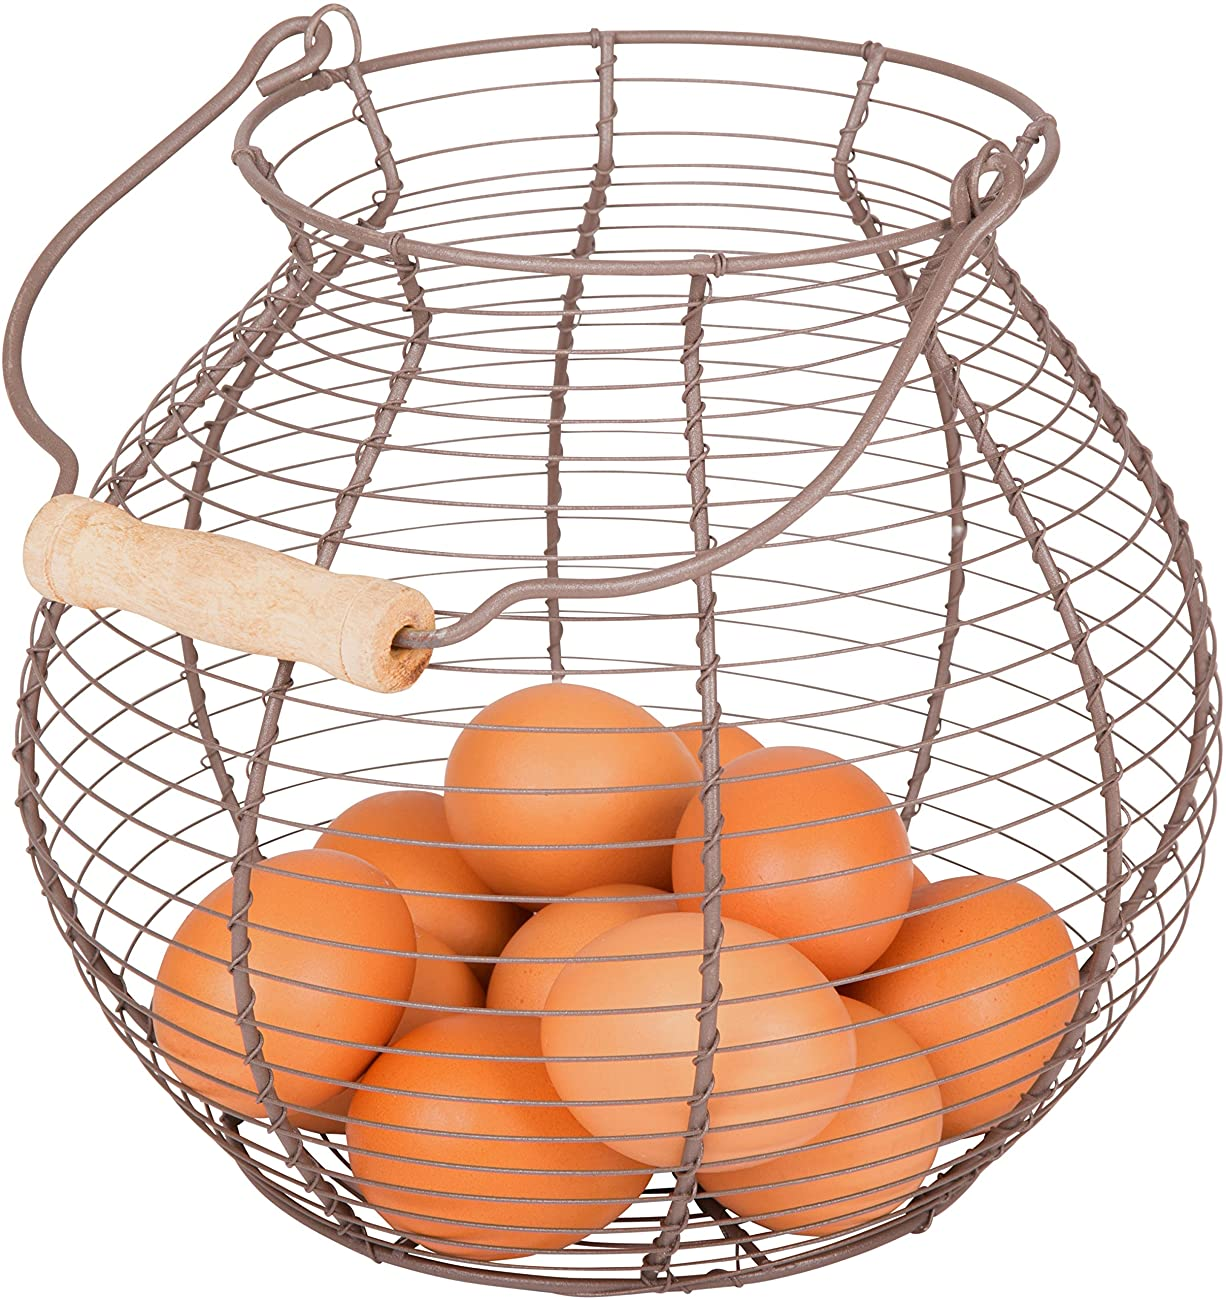 Wire Egg Basket - Vintage Style - By Trademark Innovations 1